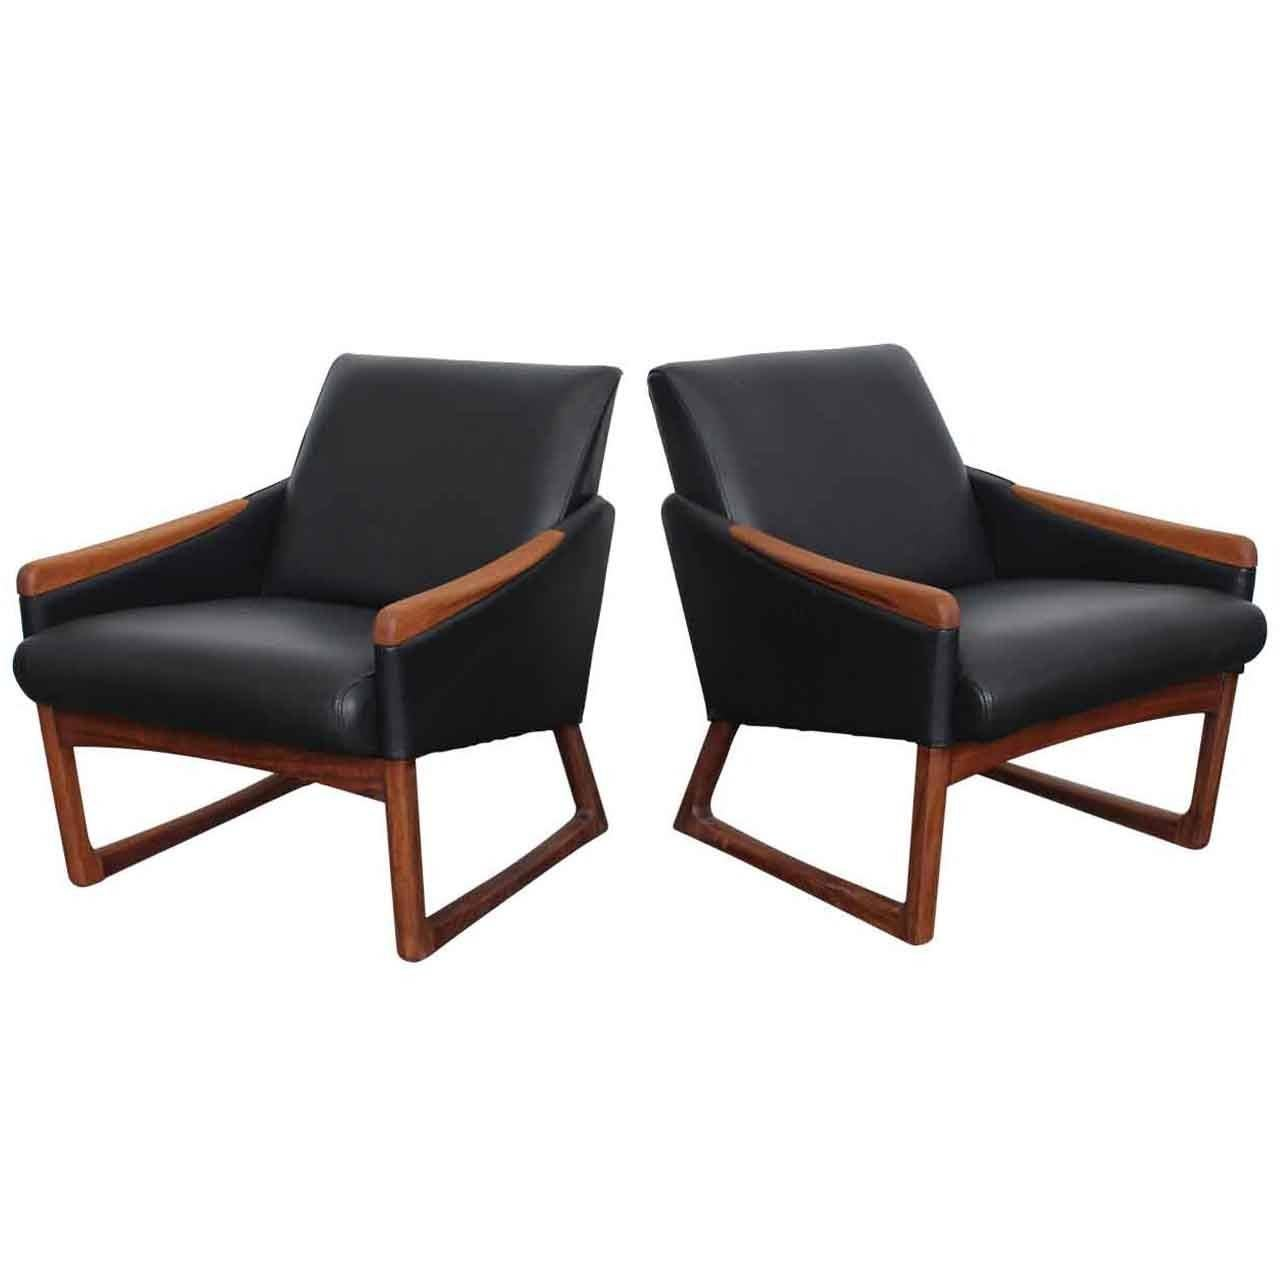 Mid century modern leather lounge chairs at 1stdibs for Modern leather chair